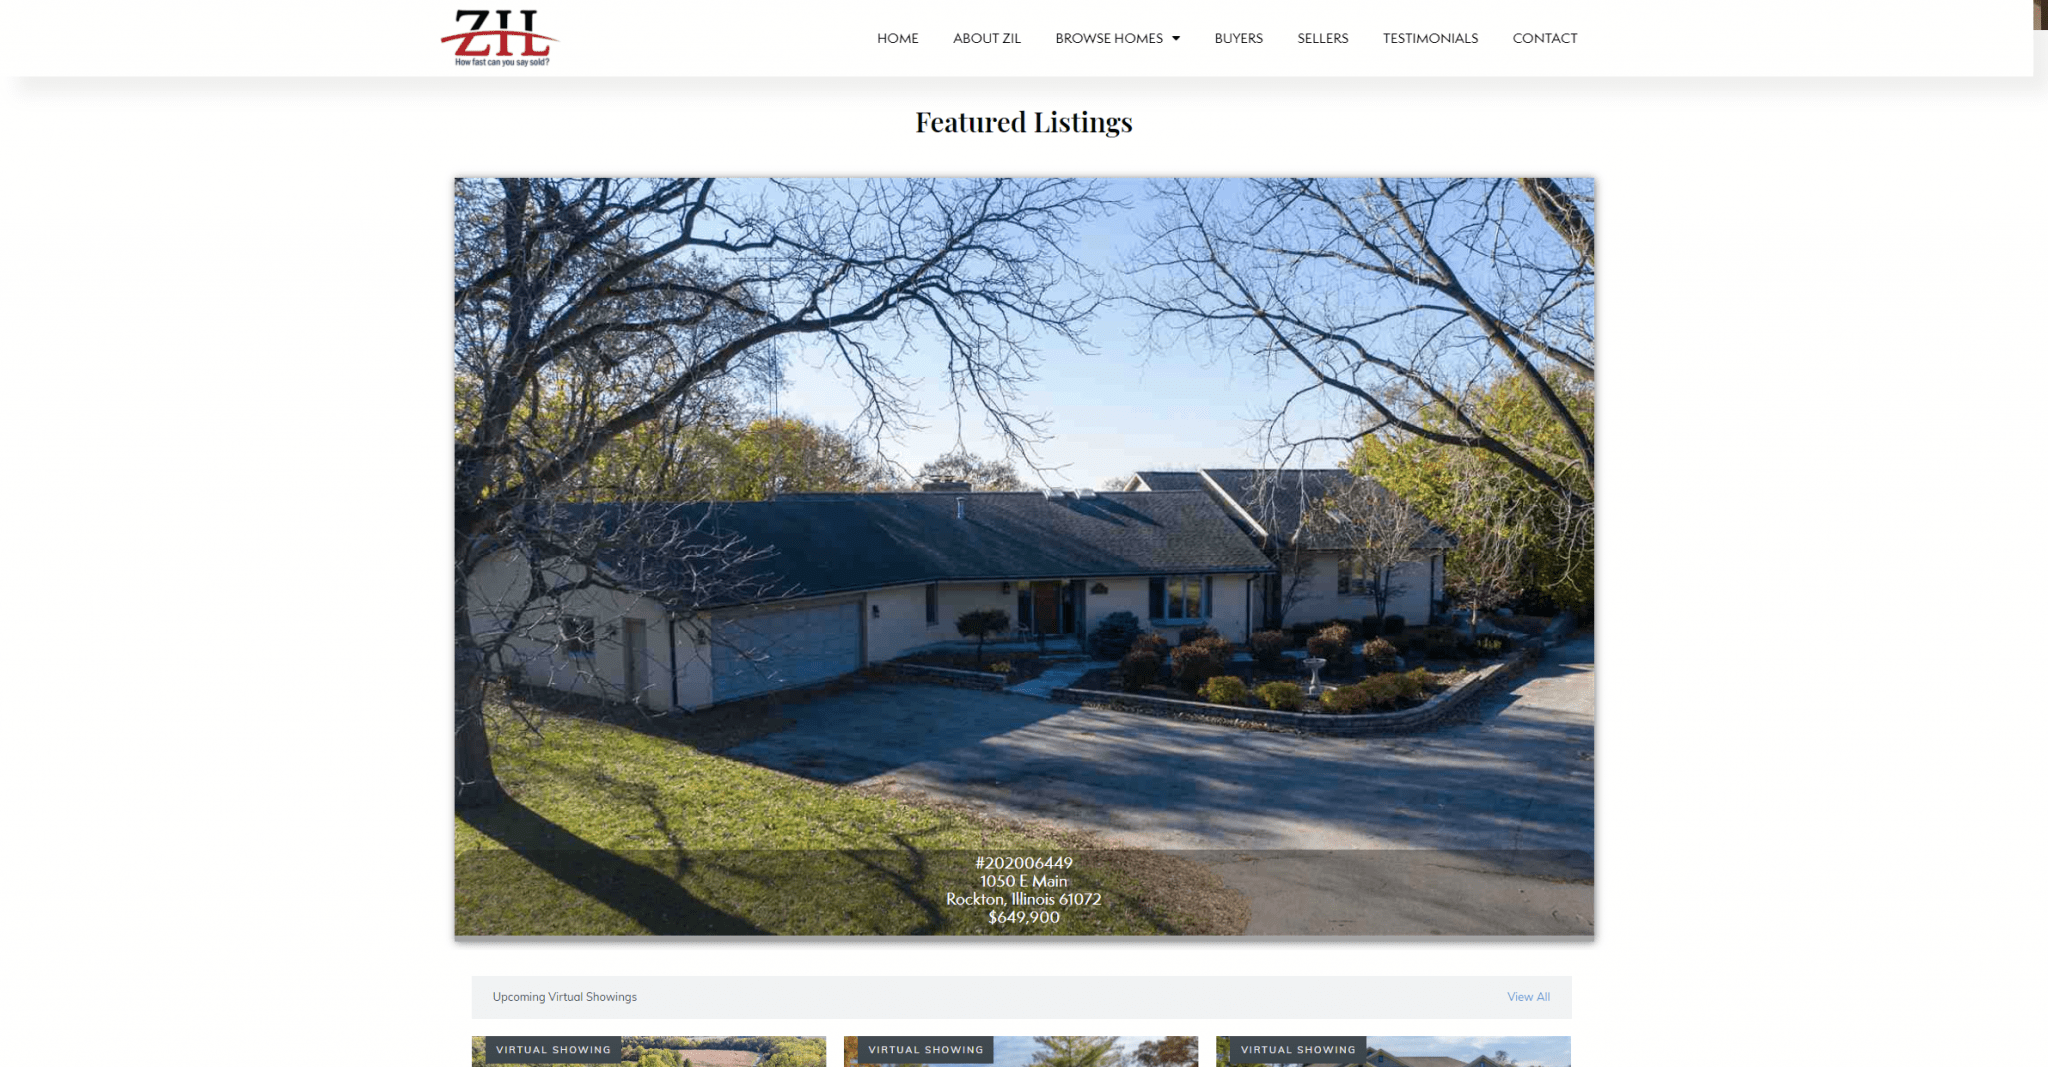 https___www.rockfordrealestateguide.com_ How Fast Can You Say Sold_ – Rockford Real Estate Guide_002